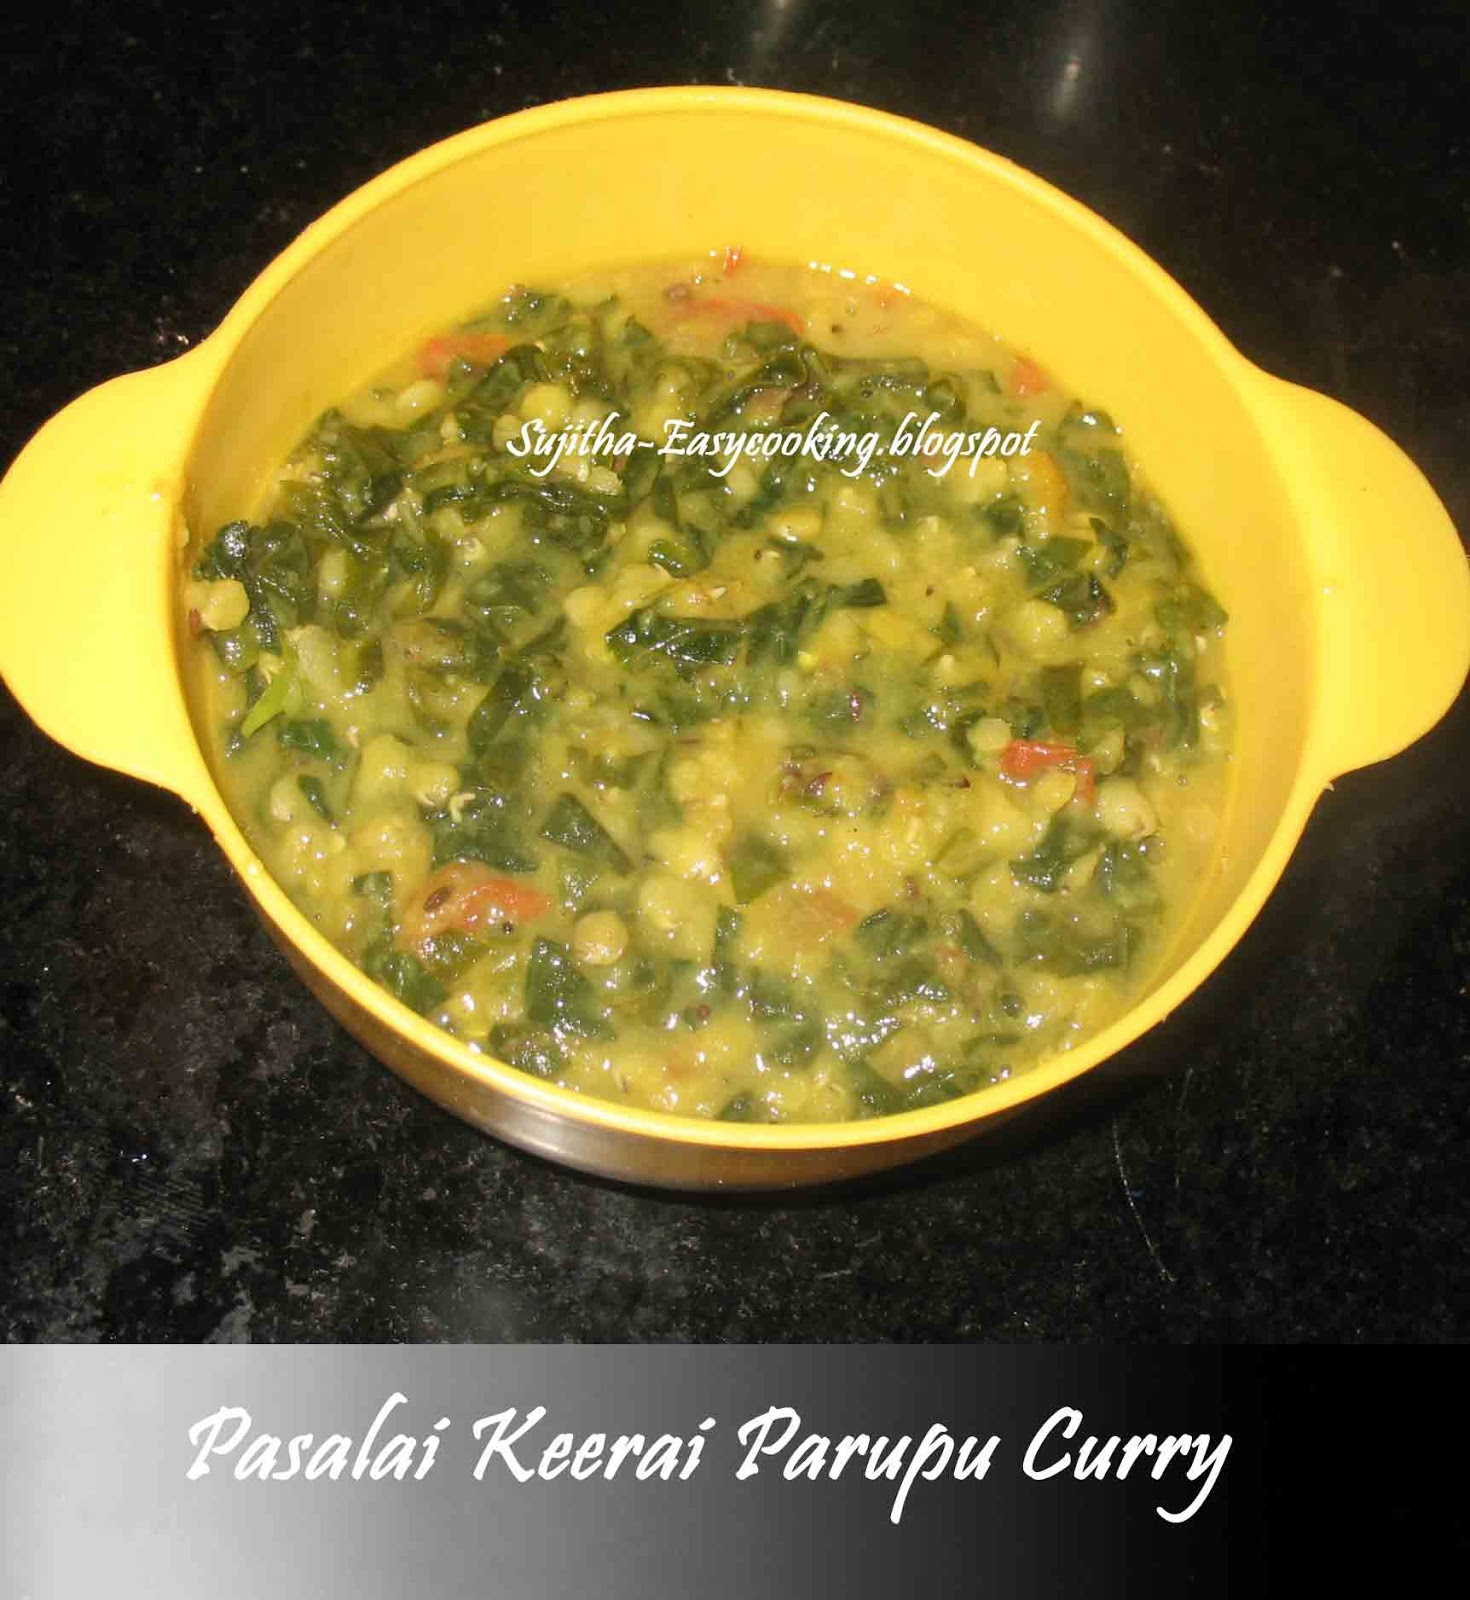 Pasalai Keerai Parupu Curry